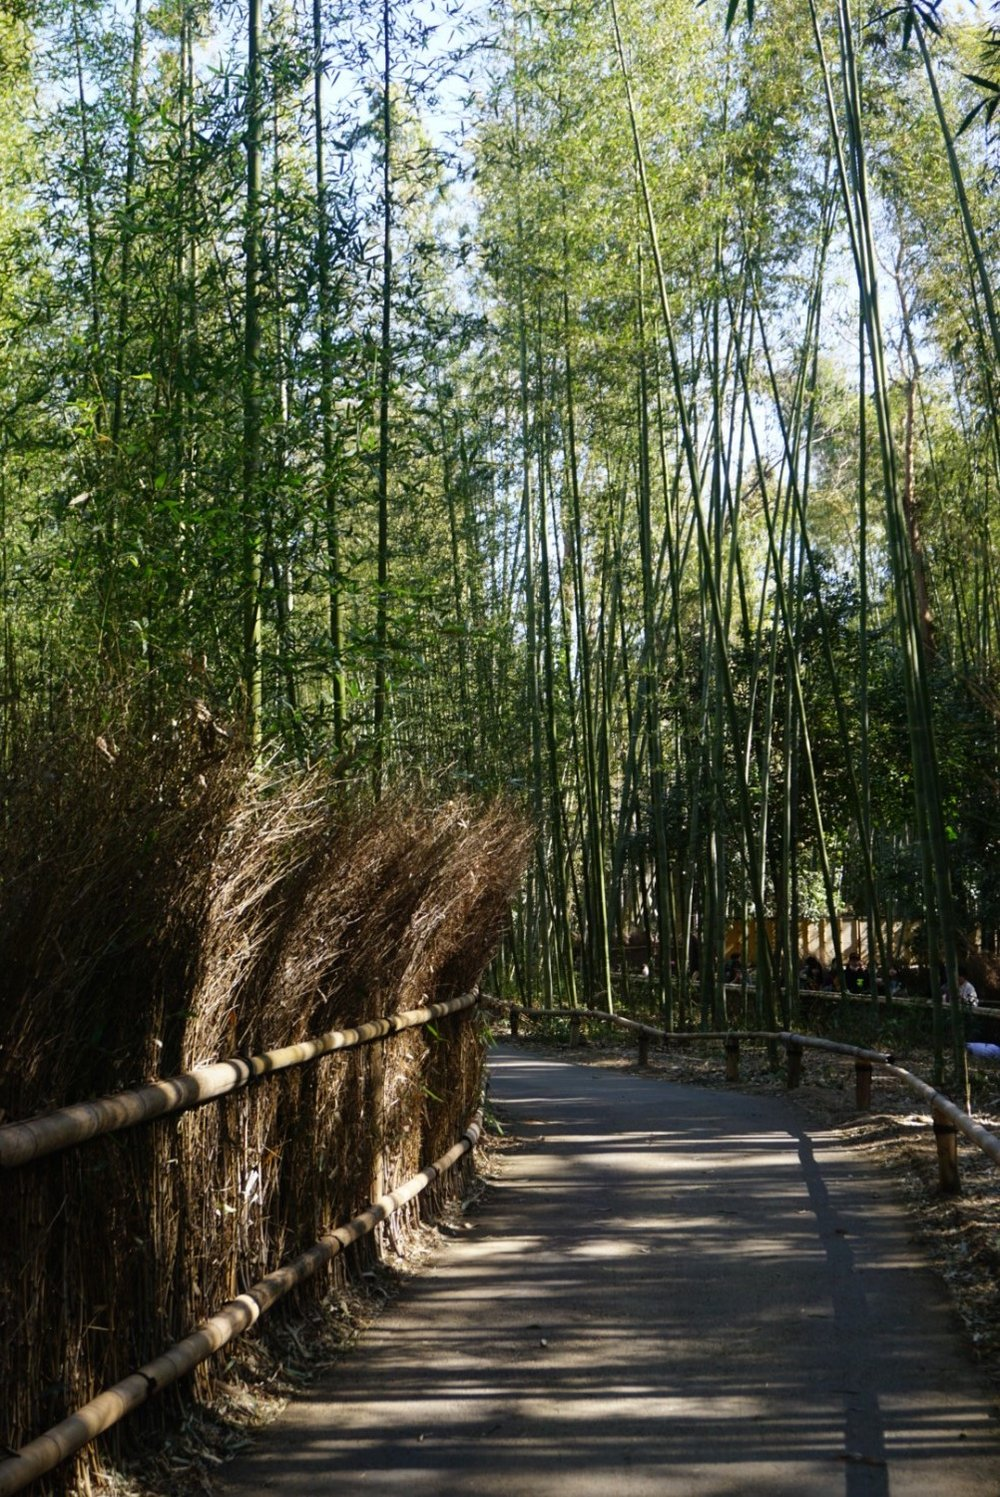 Arashiyama Bamboo Forest pathway in Kyoto, Japan.